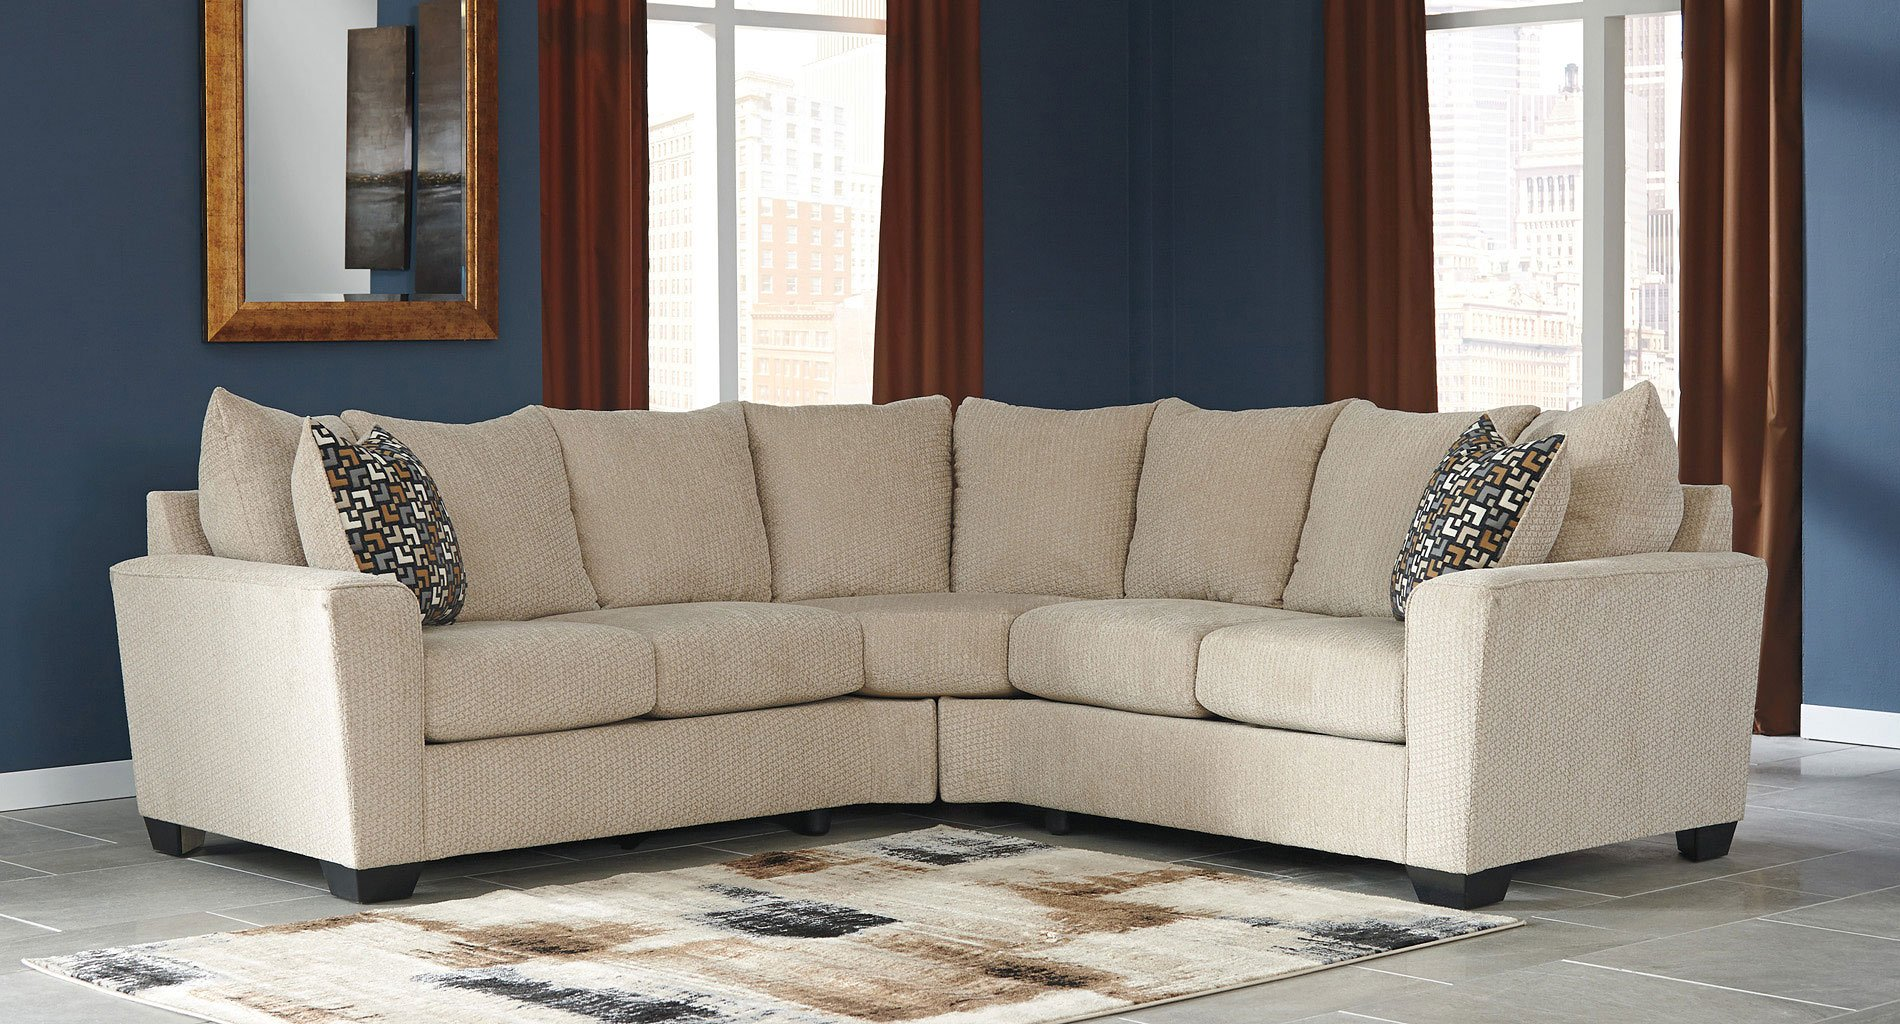 Outstanding Wixon Putty Sectional Set Caraccident5 Cool Chair Designs And Ideas Caraccident5Info